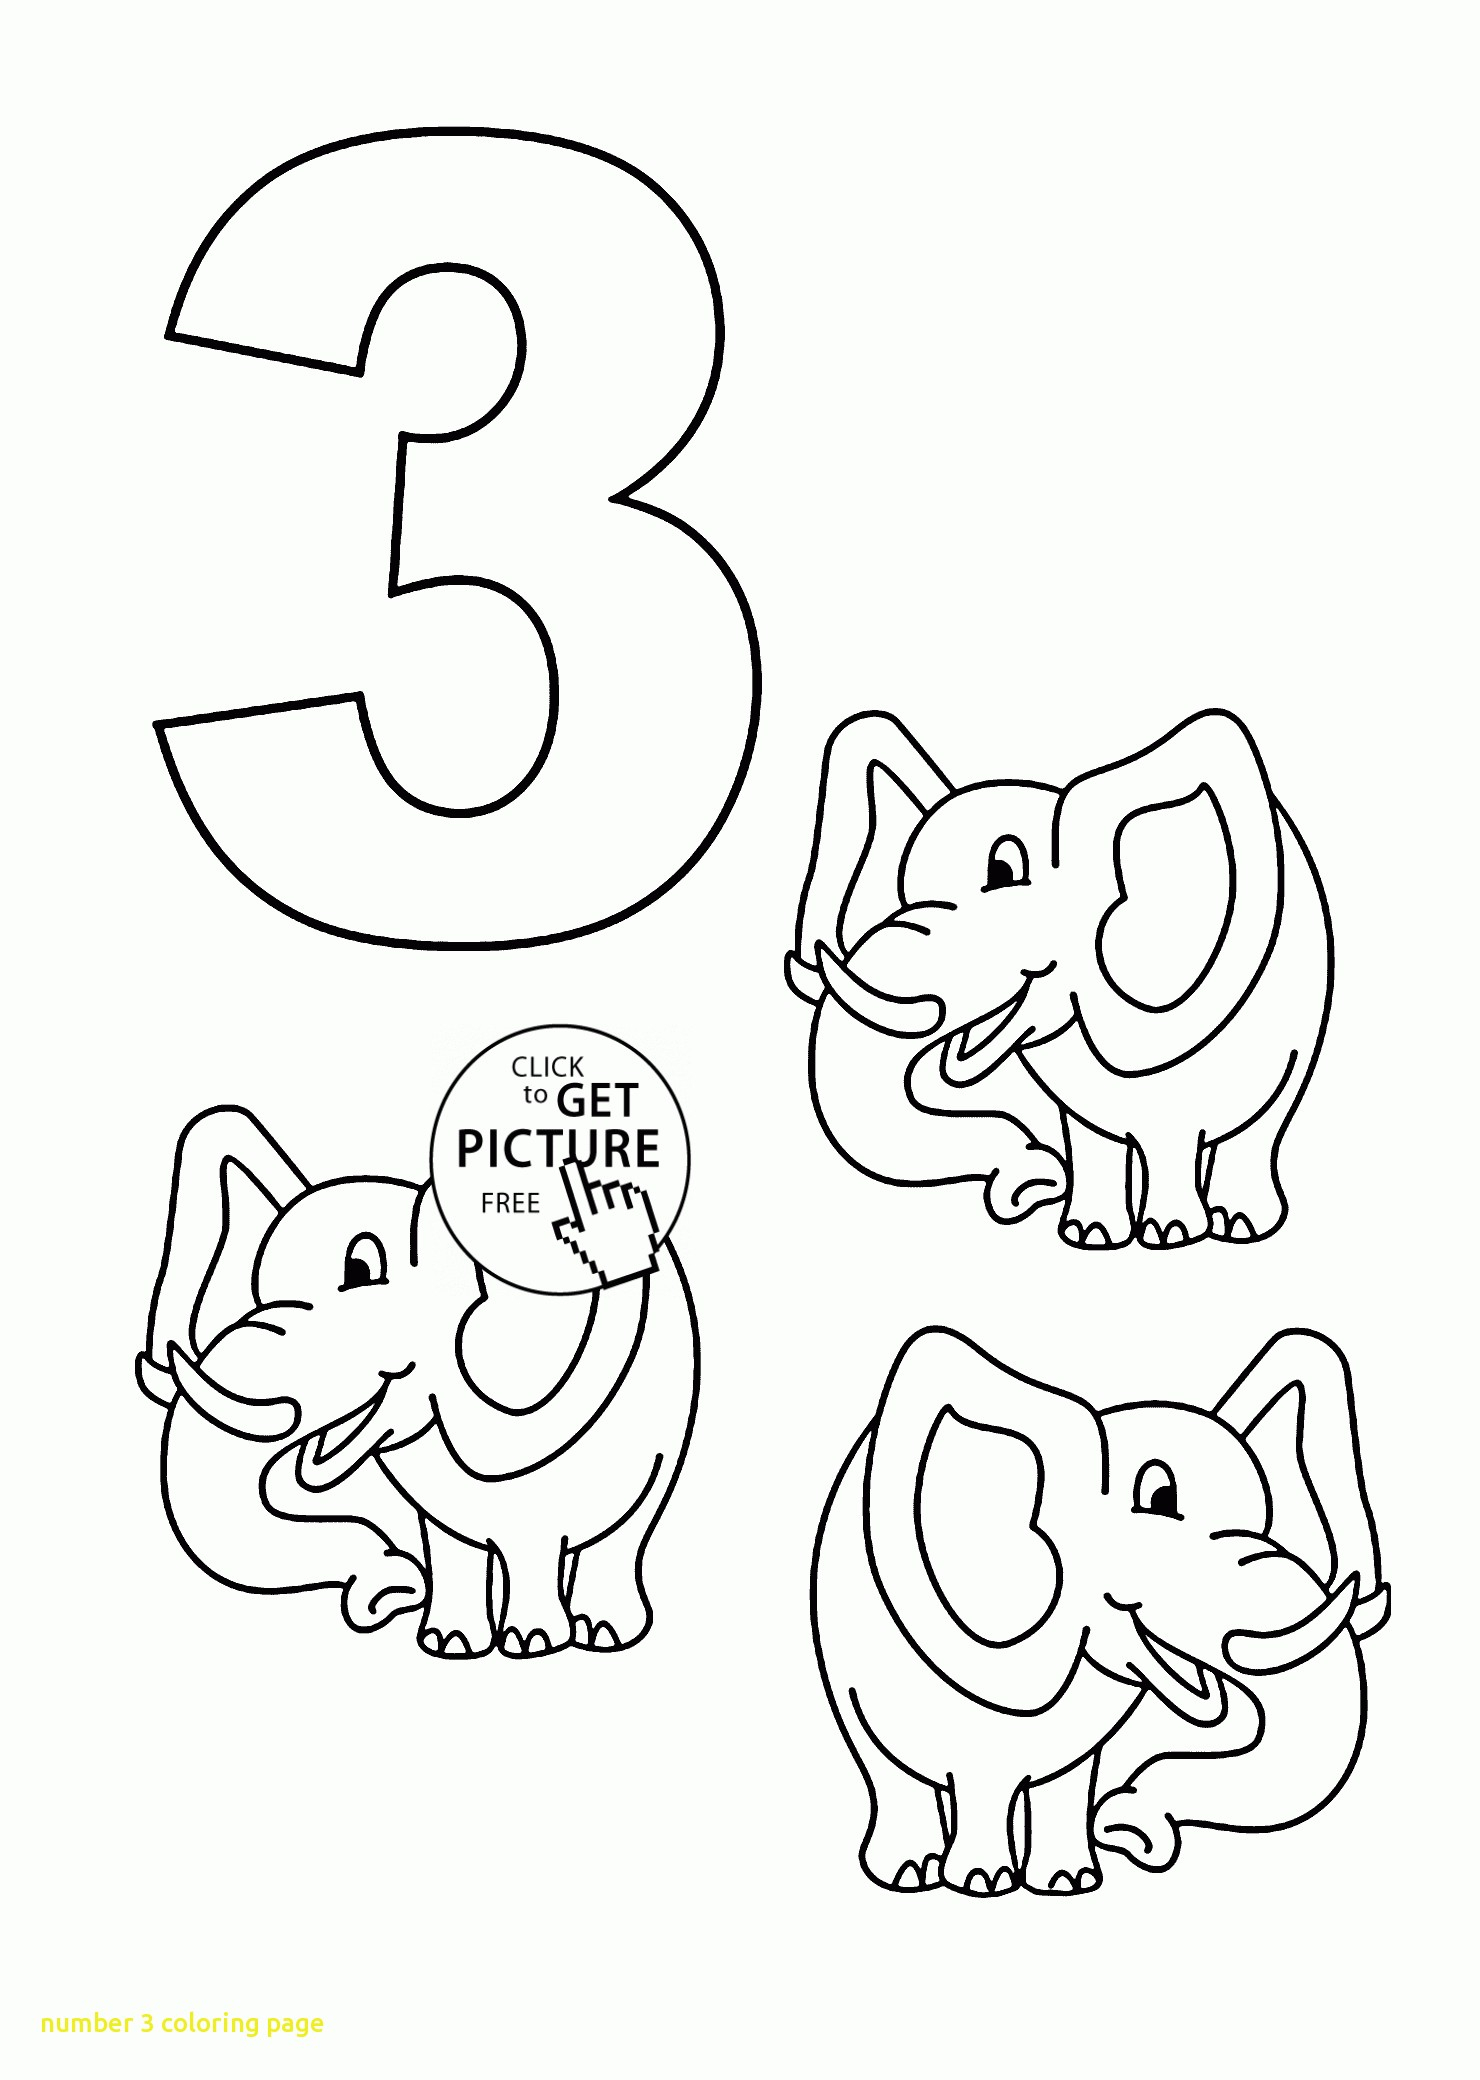 Number 13 Coloring Page At GetColorings Free